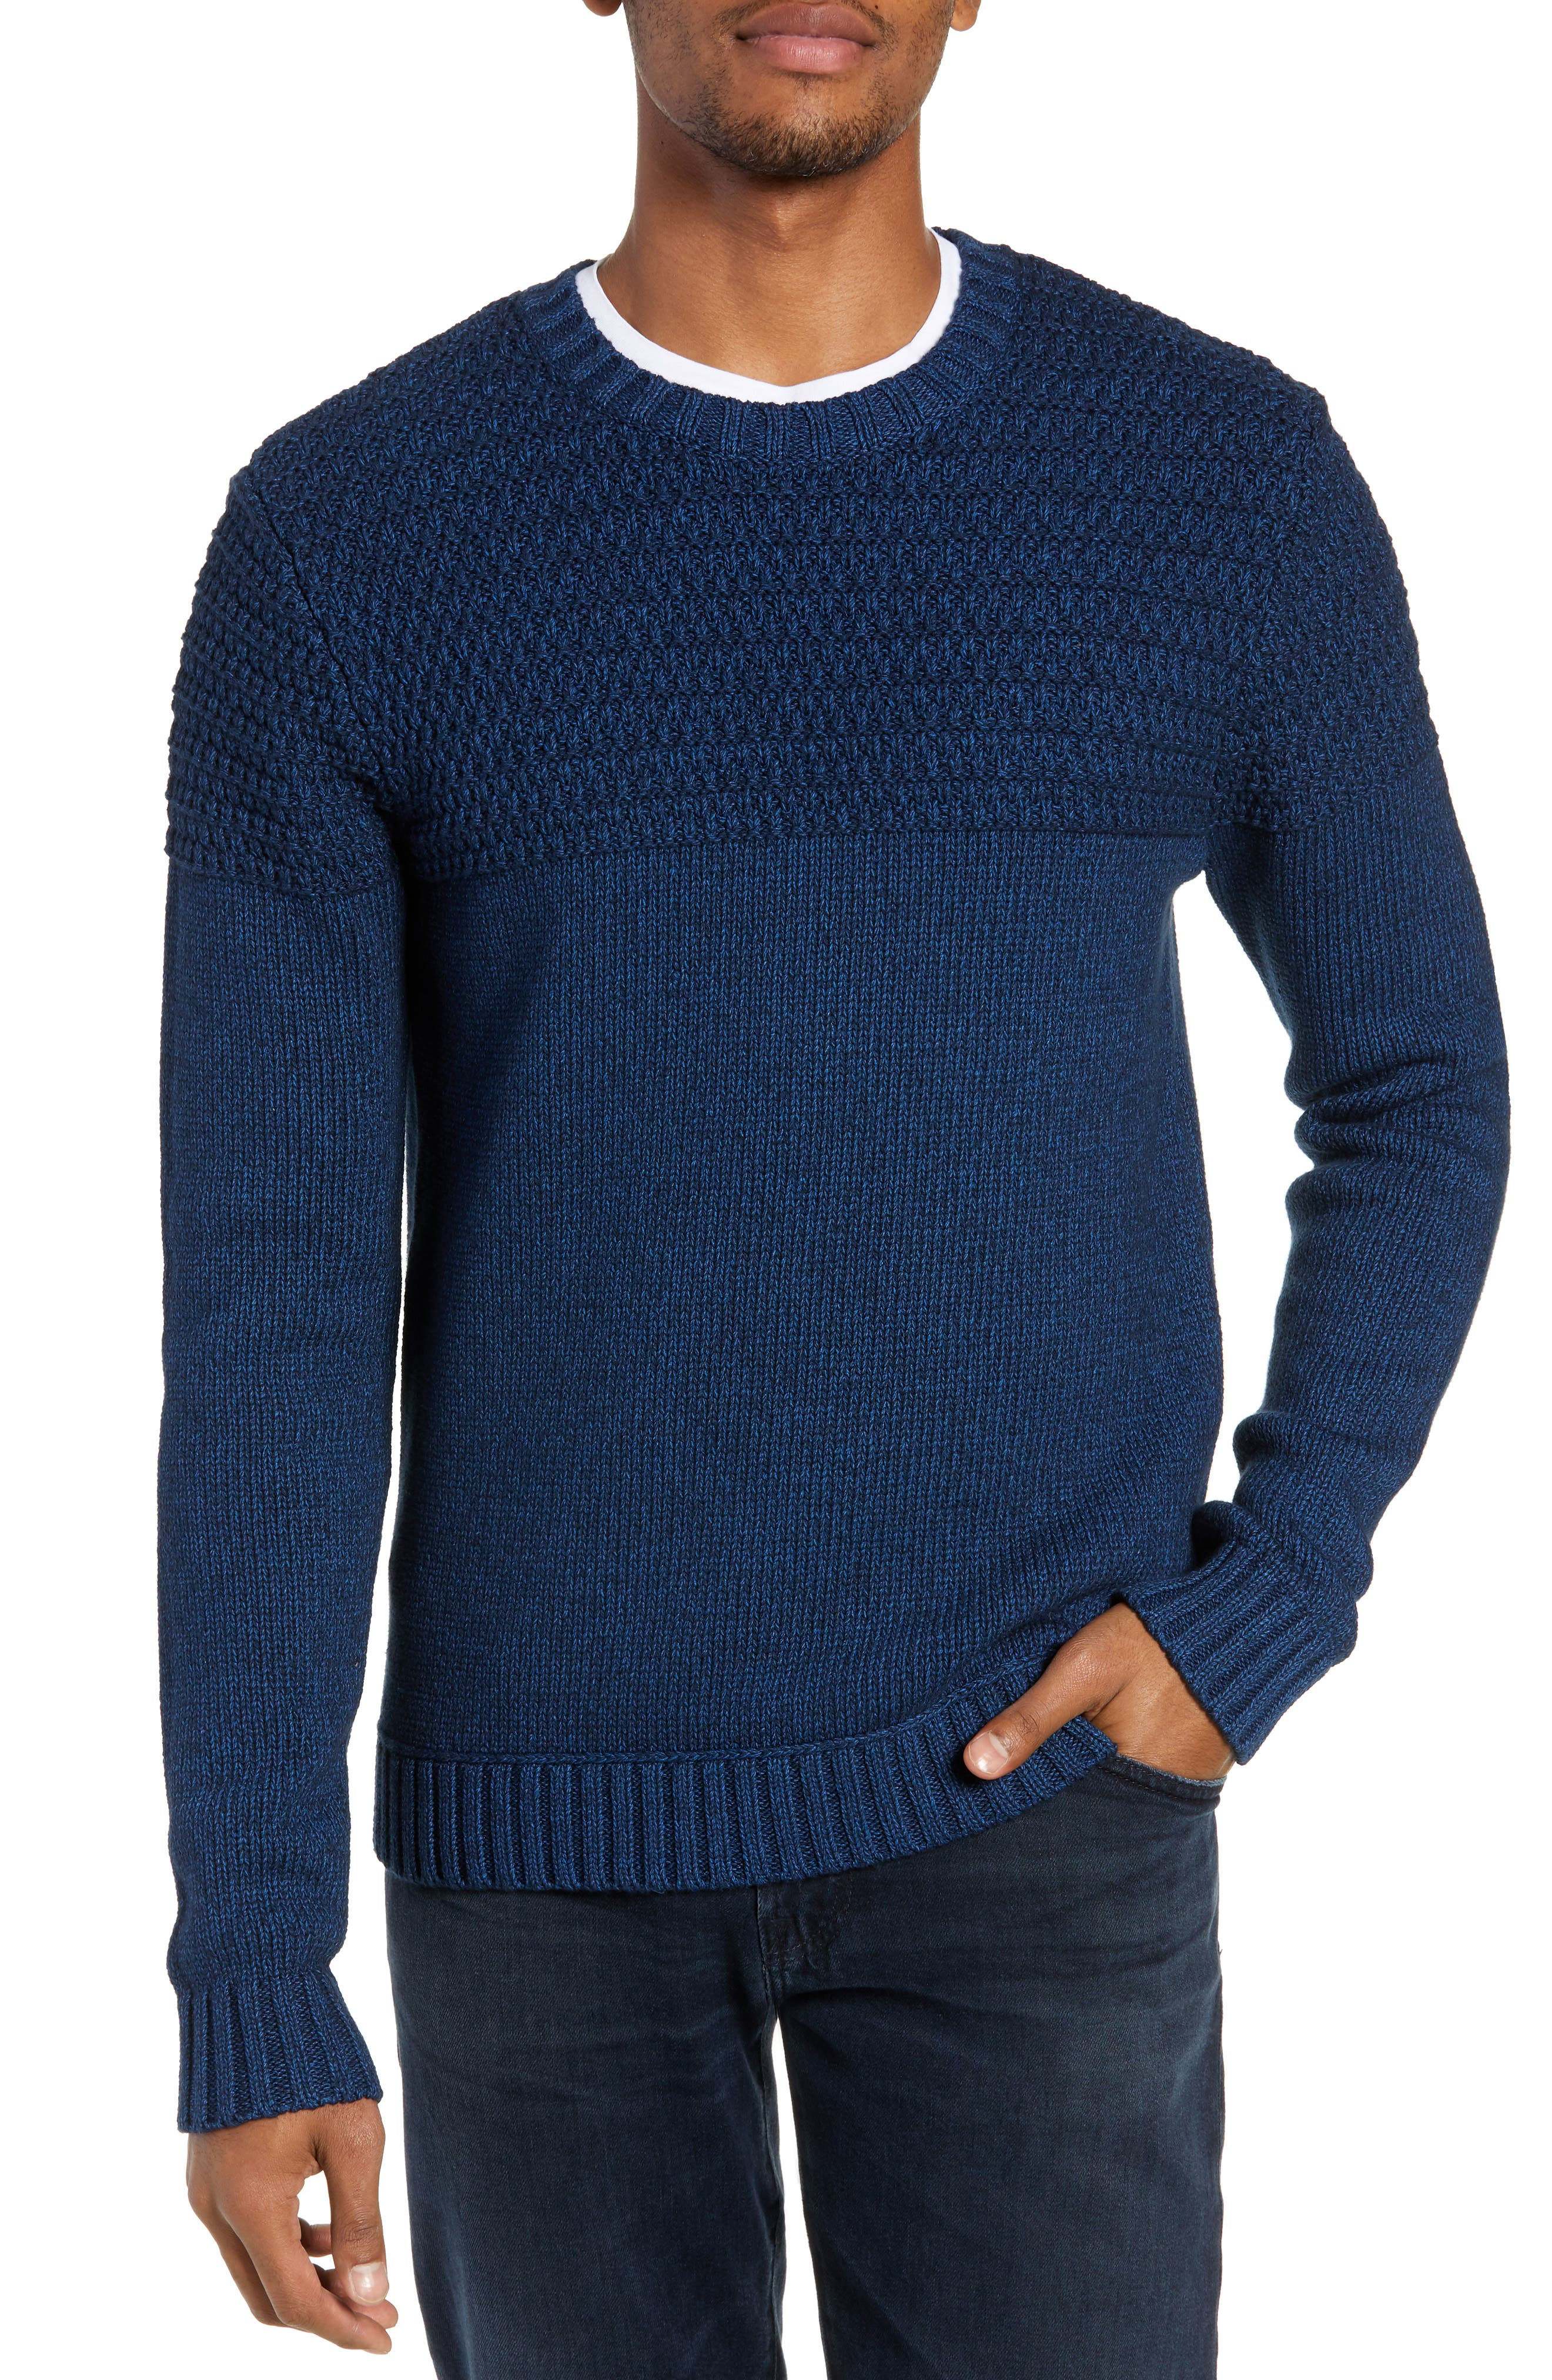 TODD SNYDER Regular Fit Textured Sweater in Royal Blue